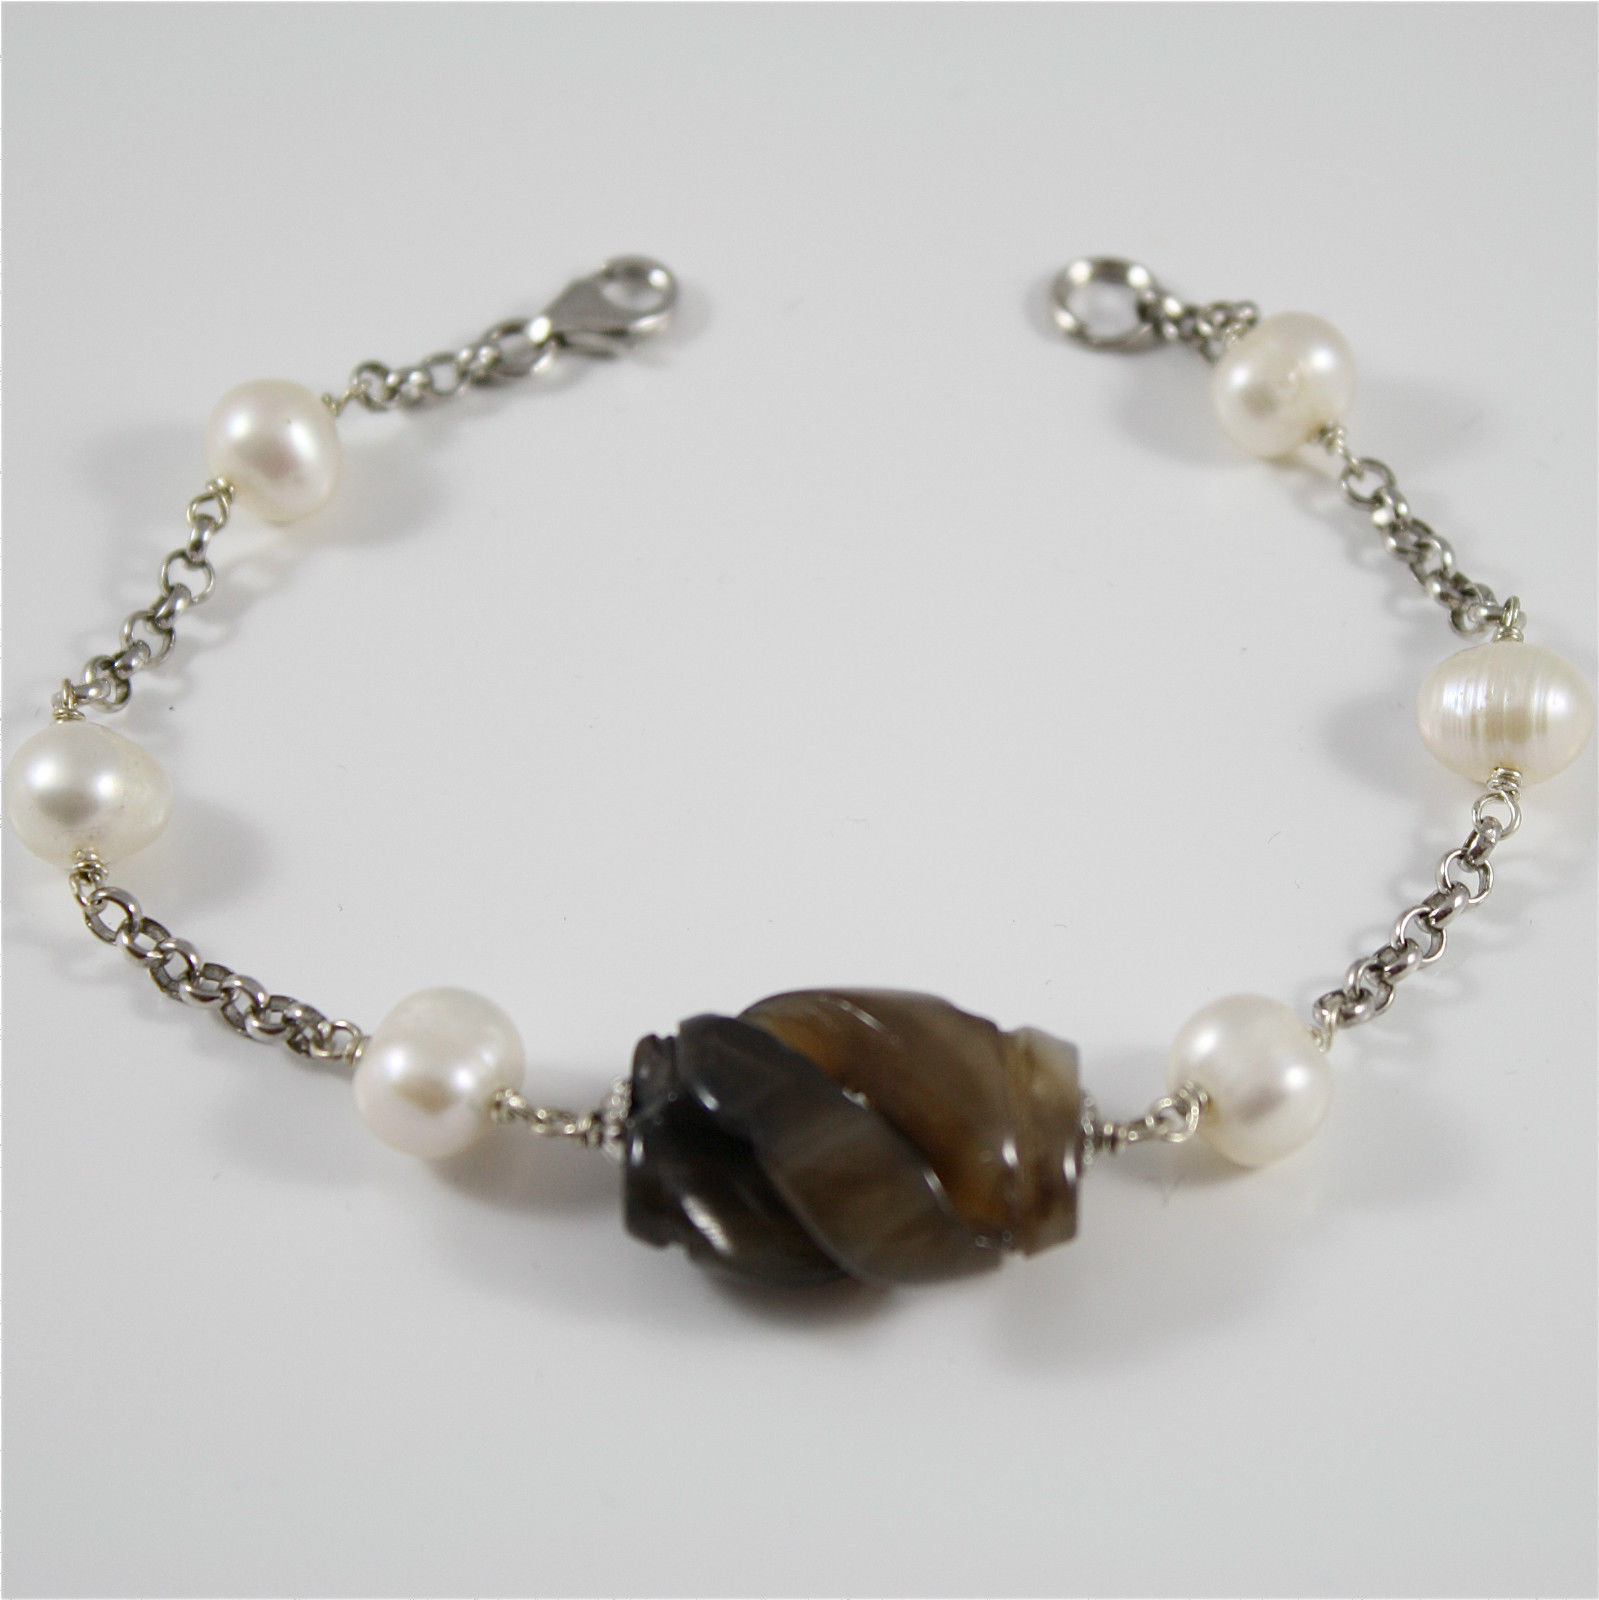 Bracelet in Sterling Silver 925 Rhodium with pearls and jade Brown worked weave - $32.65